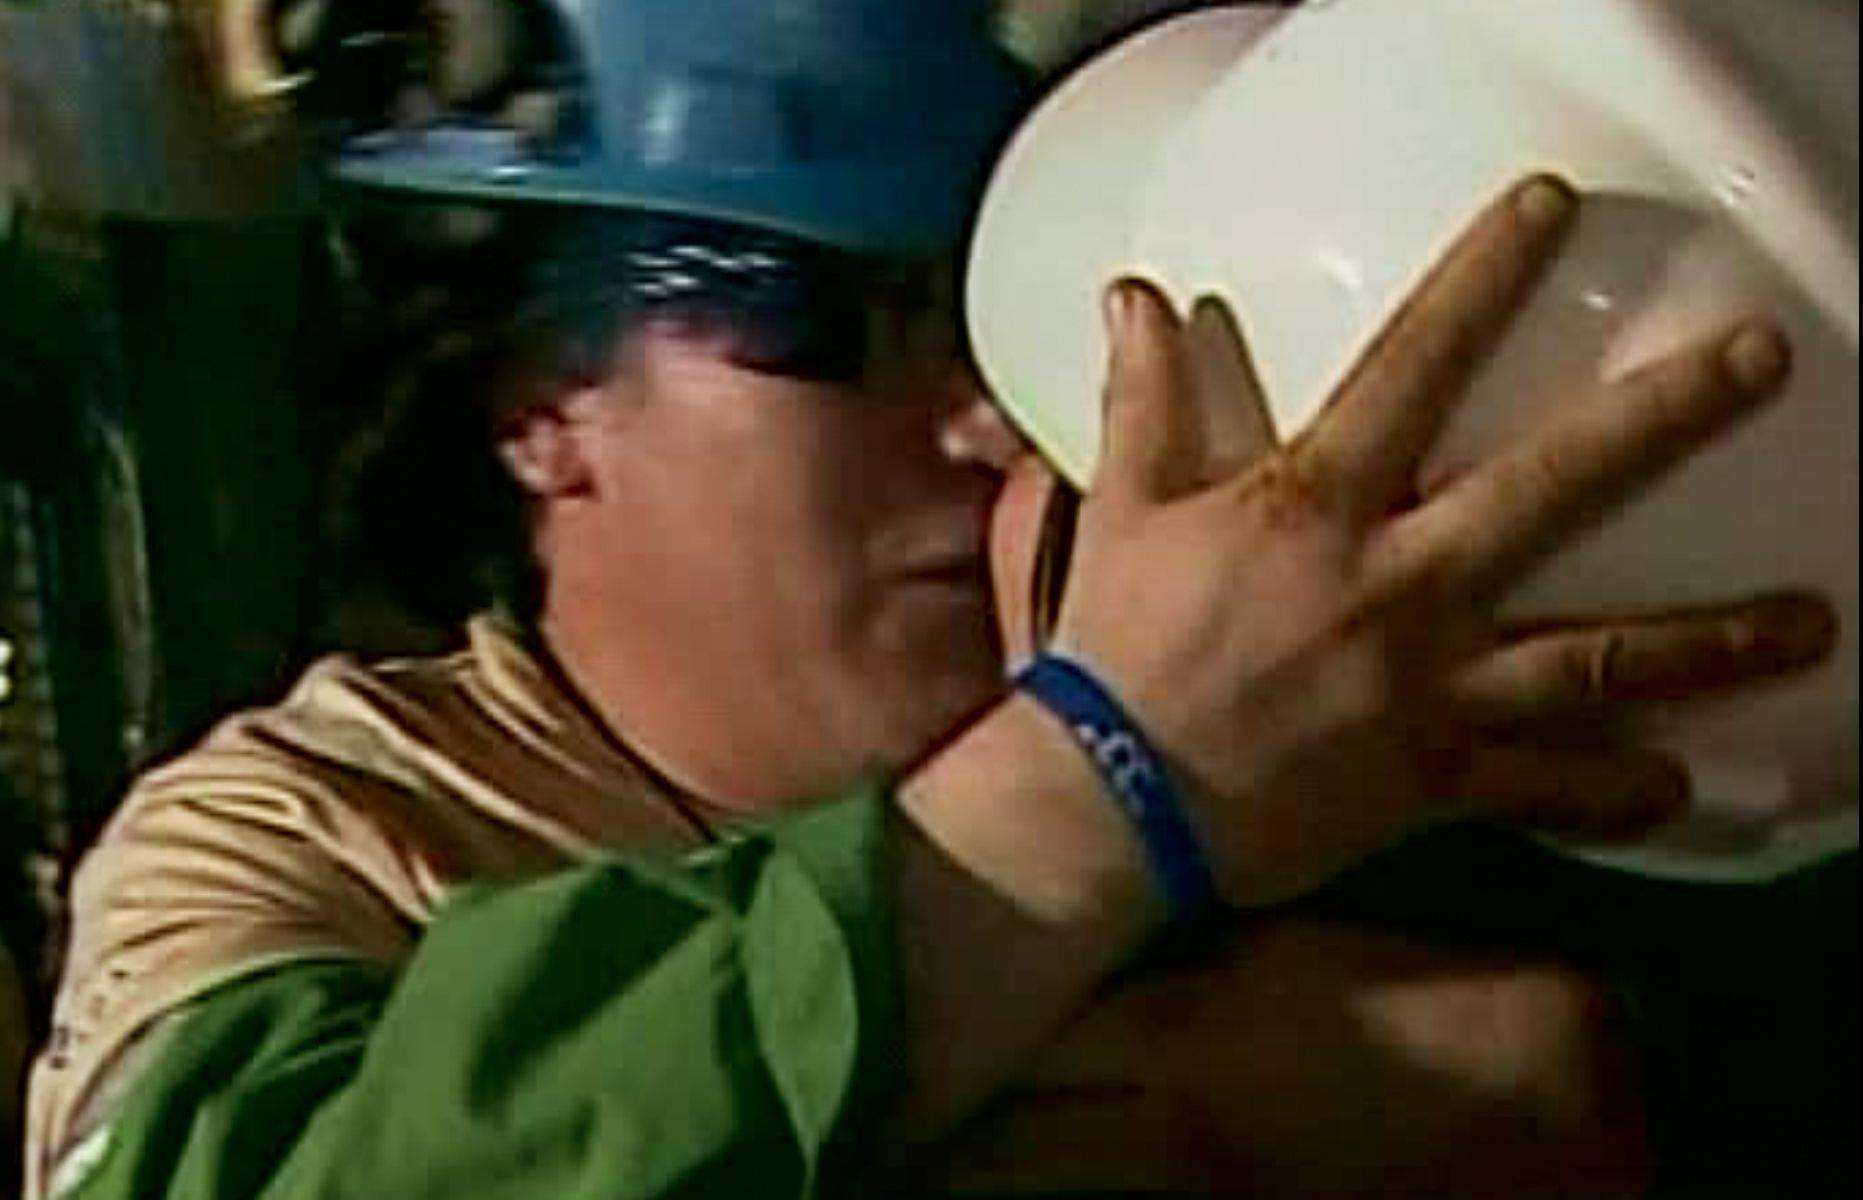 In this screen grab taken from video, Osman Araya, the sixth miner to be rescued, greets a relative after his rescue Wednesday, Oct. 13, 2010 at San Jose Mine near Copiapo, Chile.